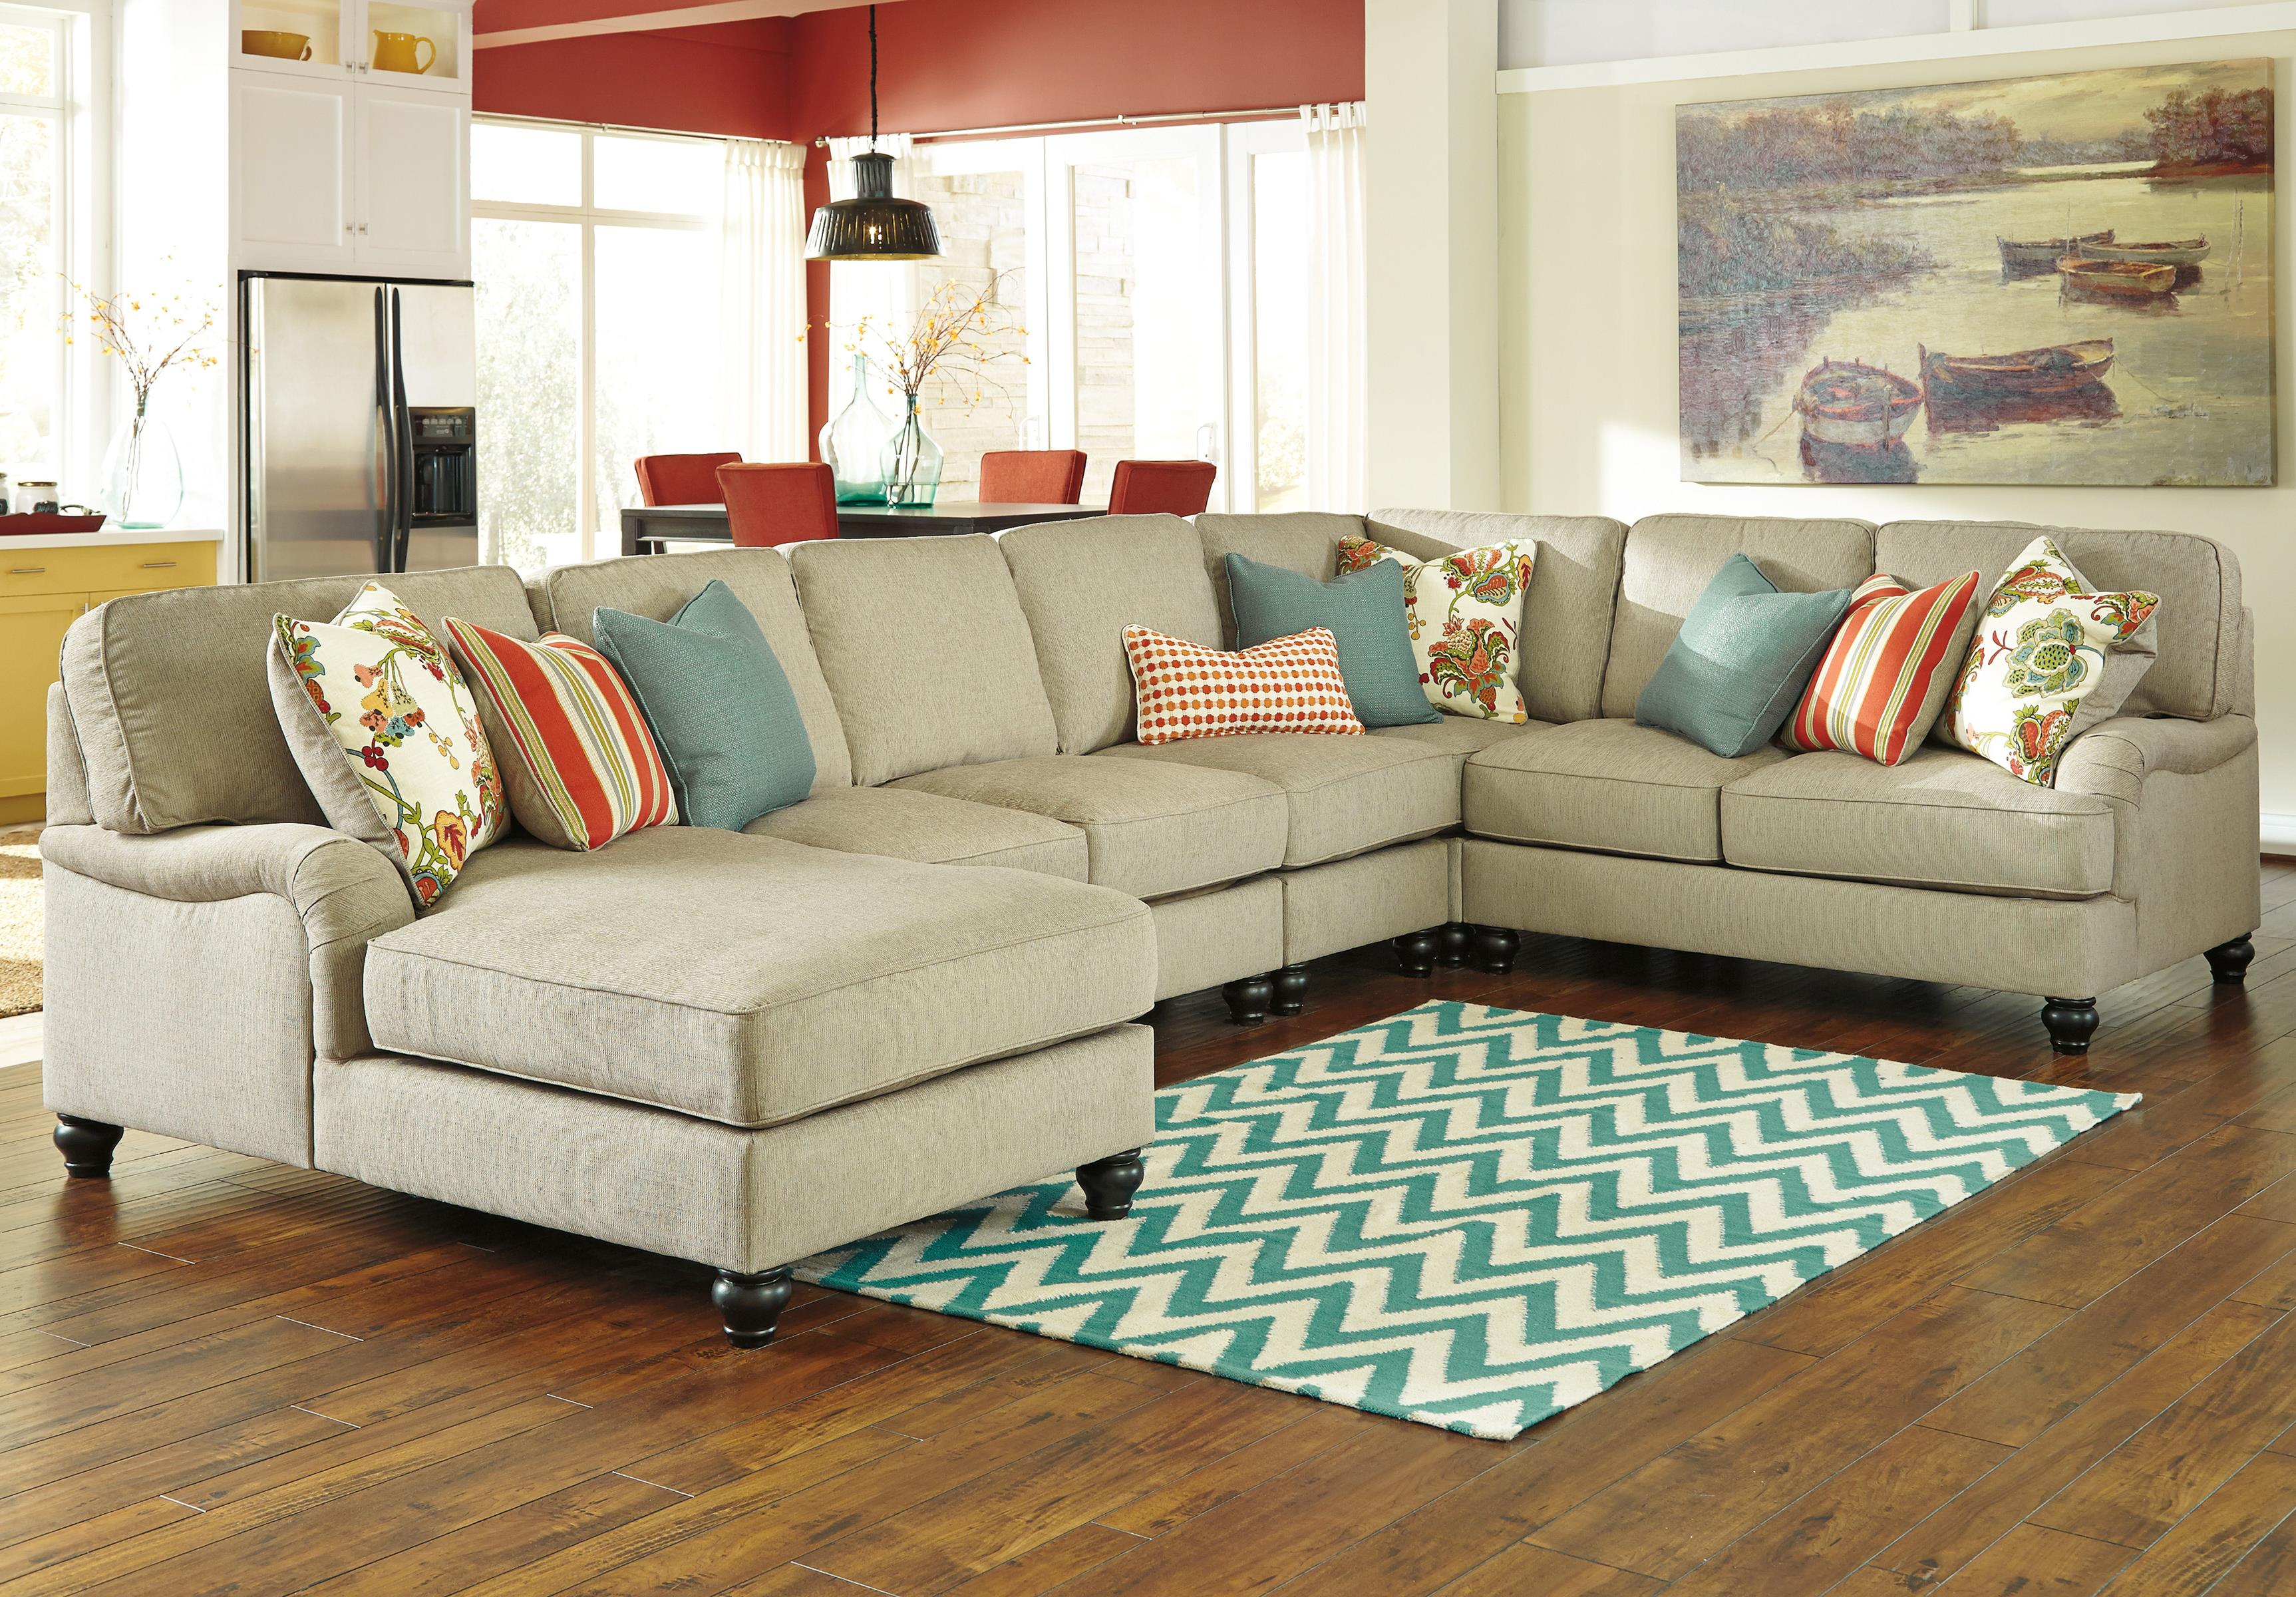 Ashley/Benchcraft Kerridon 5-Piece Sectional with Left Chaise - Item Number: 2630016+34+77+46+56